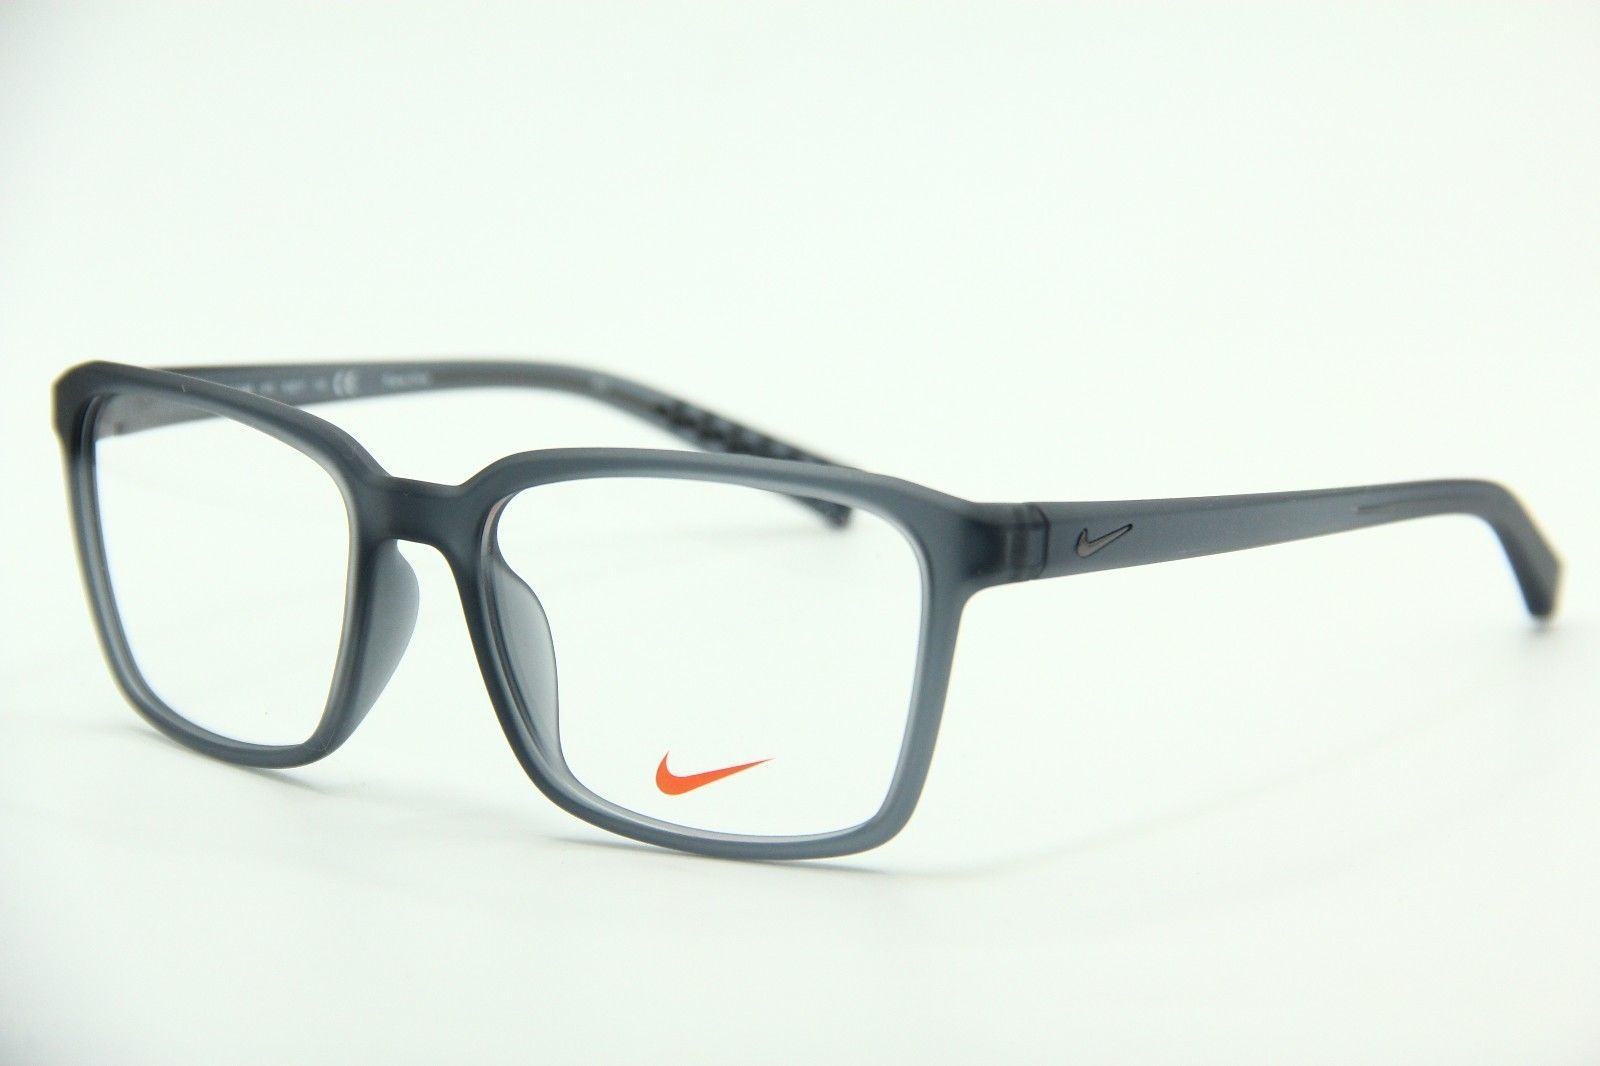 9eec1c1672c New Nike 7096 070 Gray Eyeglasses Authentic and 50 similar items